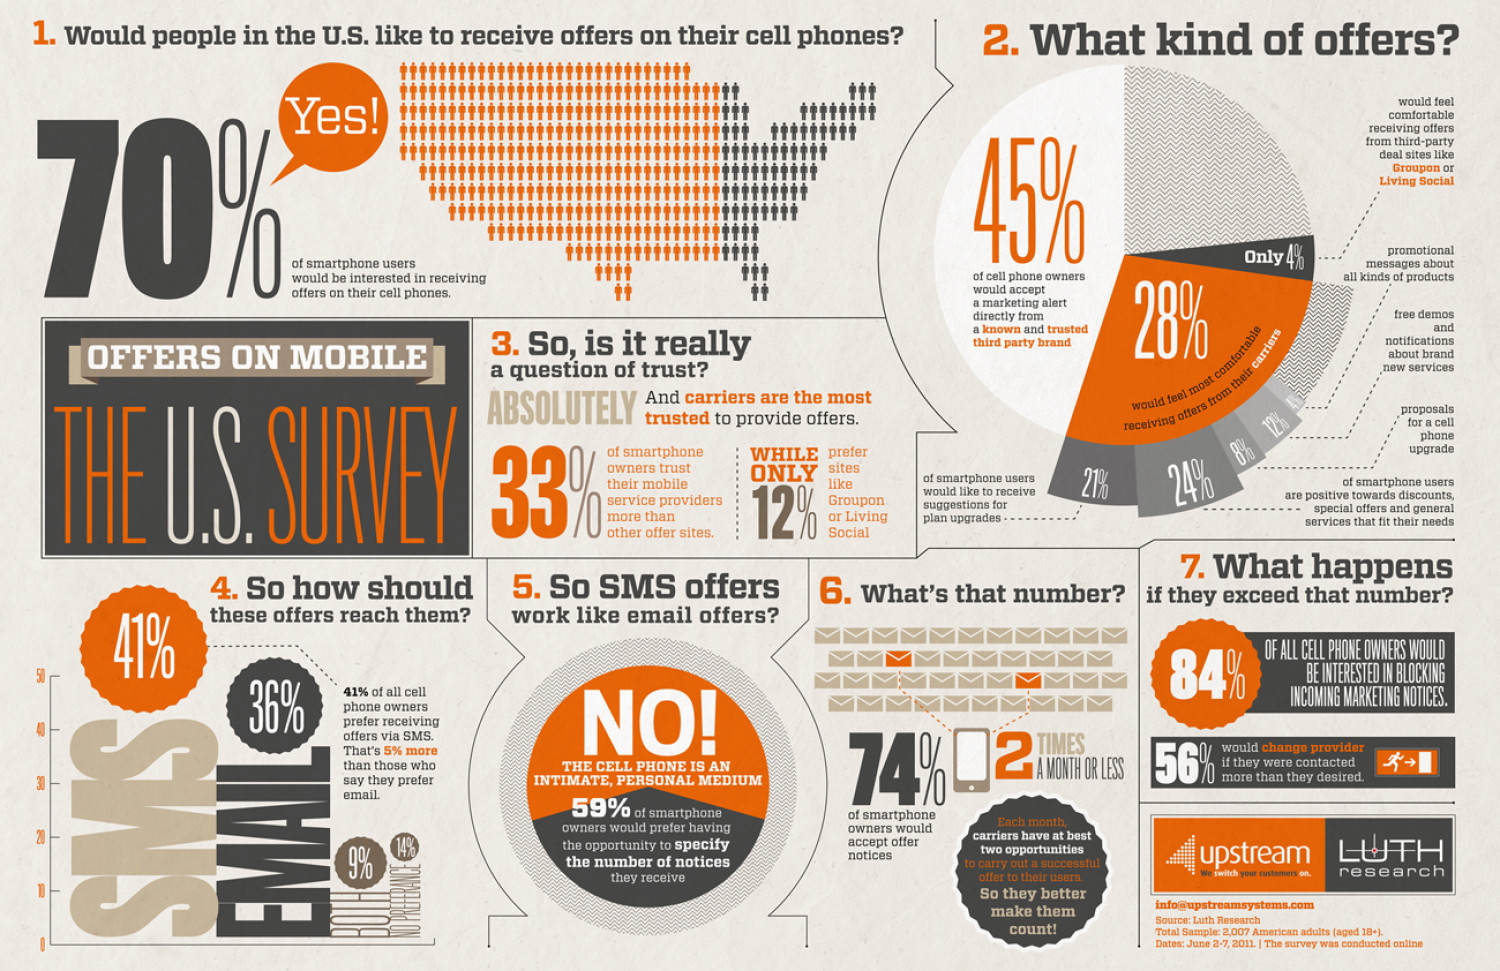 Offers on Mobile: The U.S. Survey Infographic